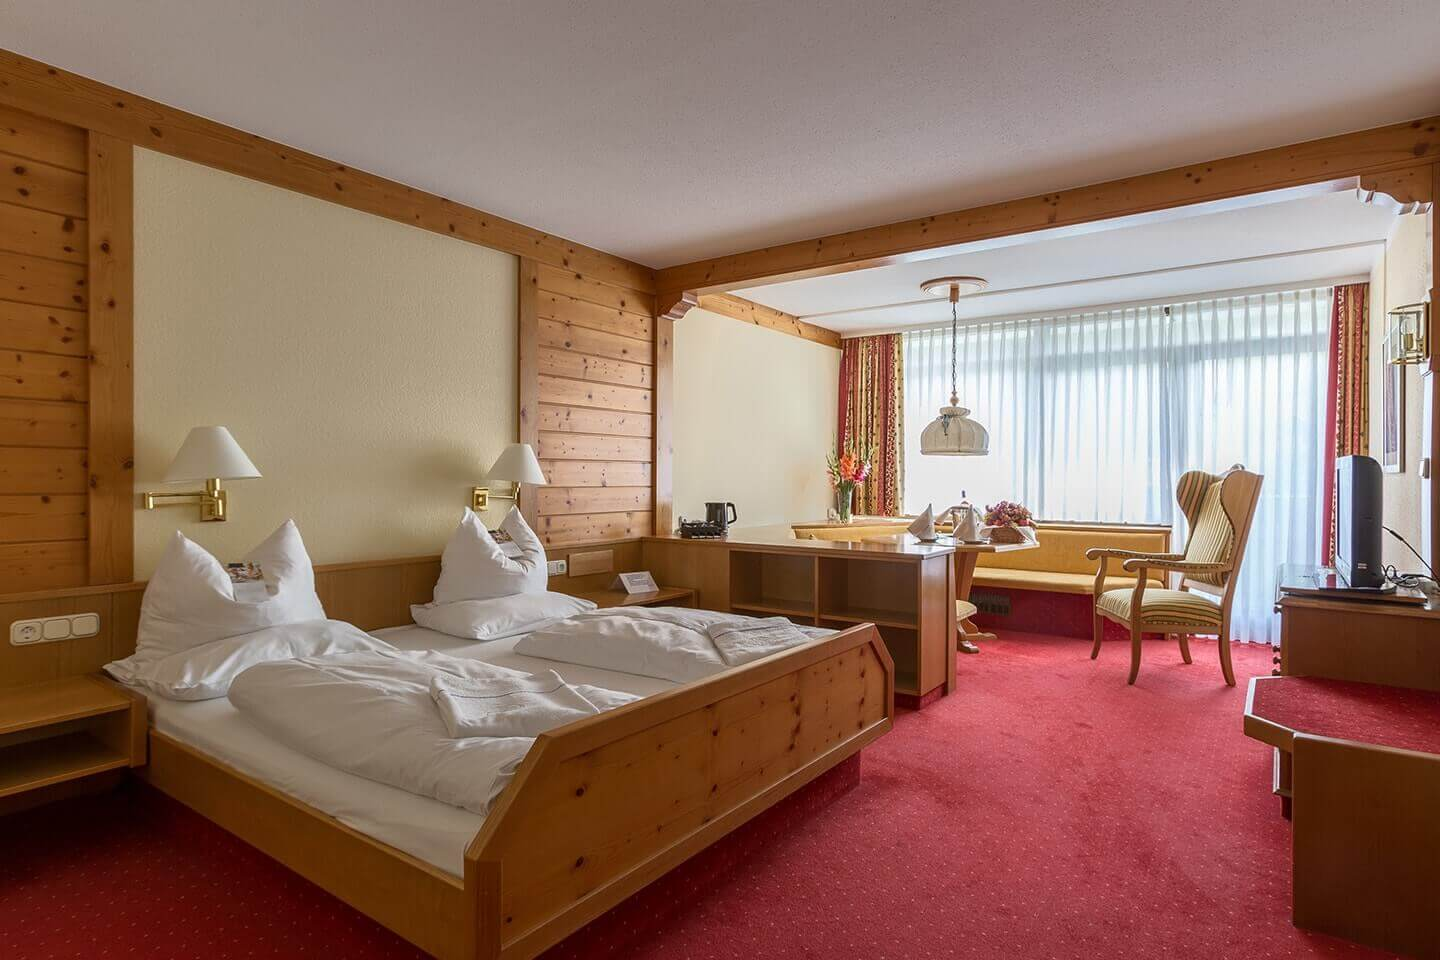 5 Star Hotel in Bavaria, Germany